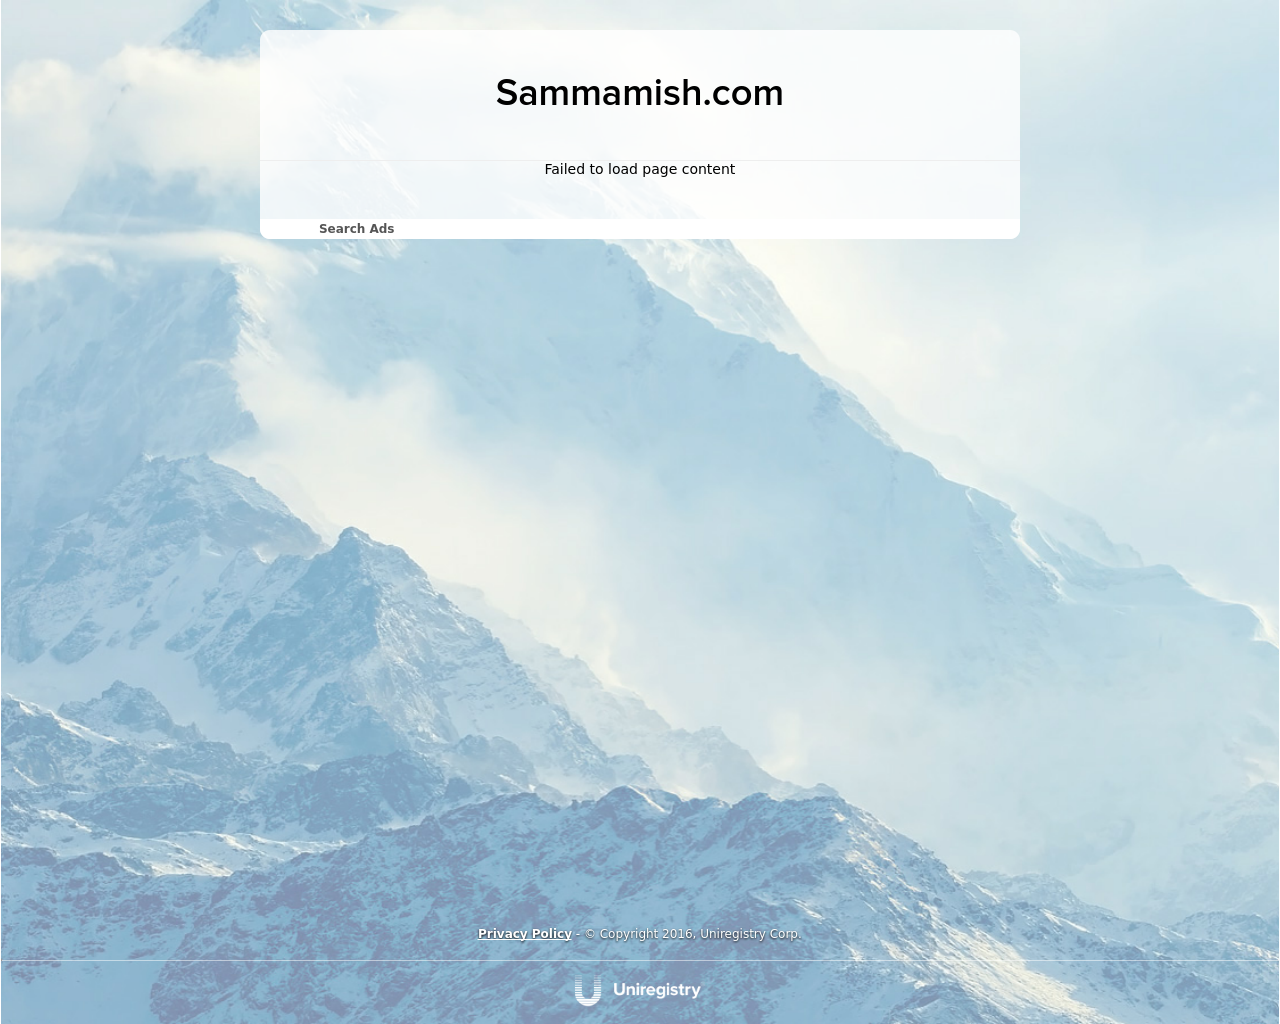 Sammamish.com-Advertising-Reviews-Pricing